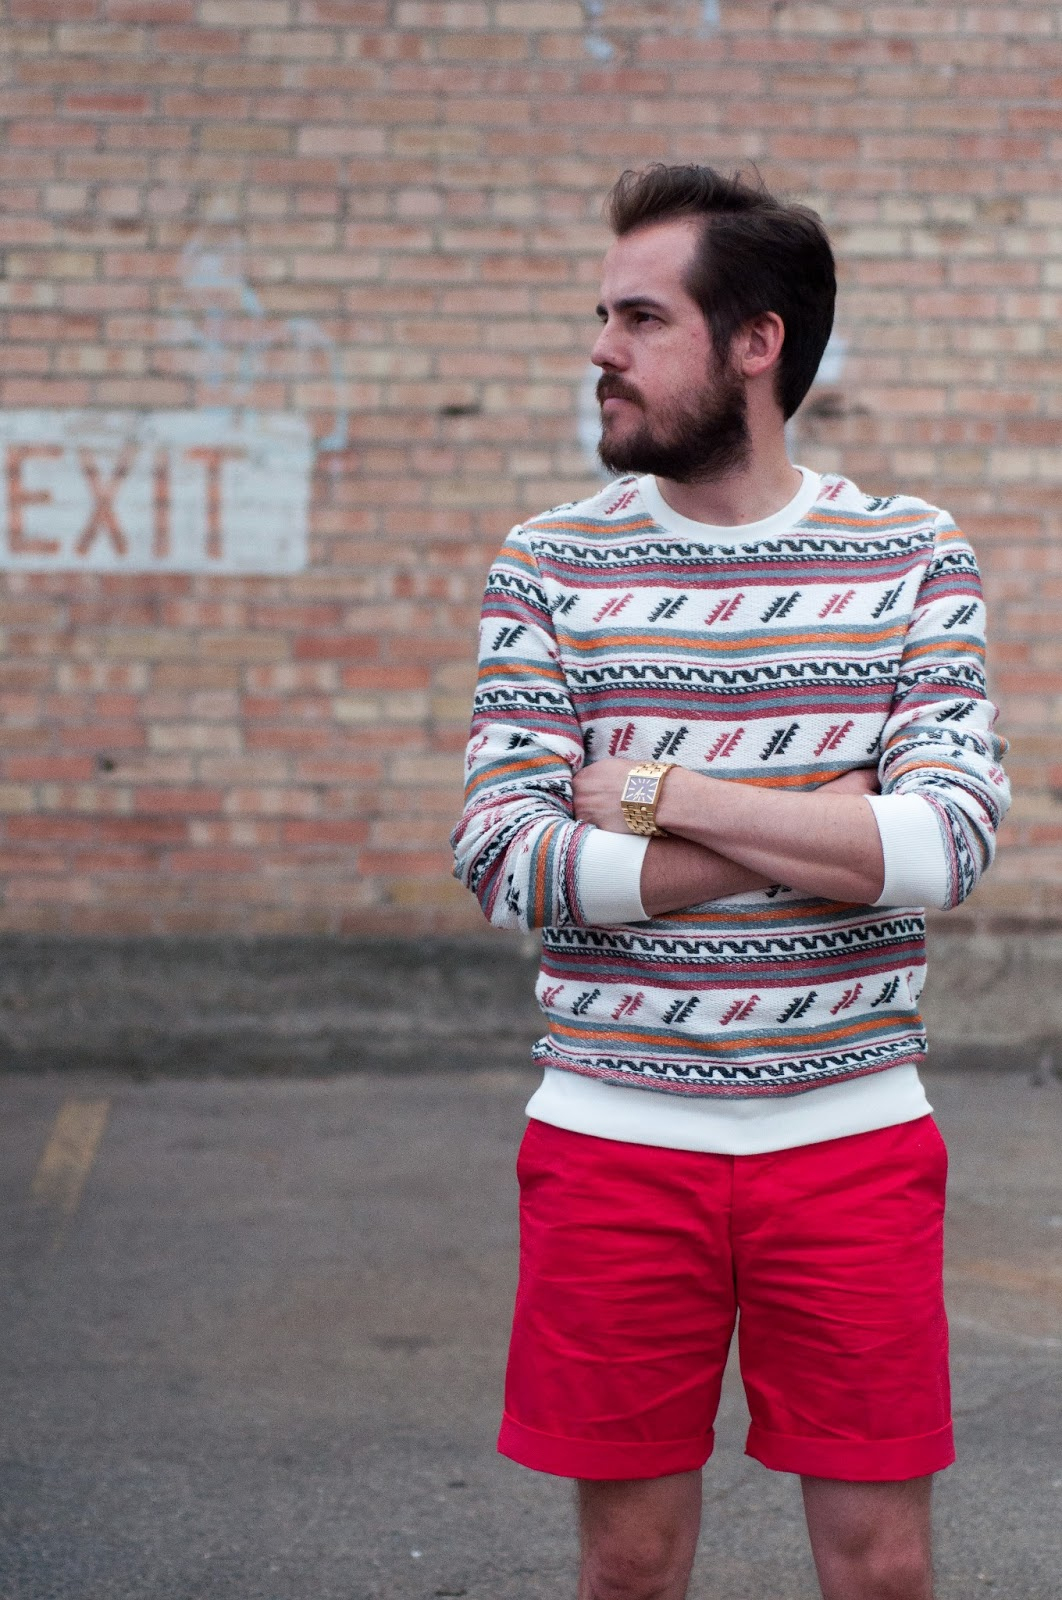 style, style blog, fashion blog, fashion blogger, jcrew style blog, ootd, jcrew ootd, topman ootd, topman aztec sweater, topman, h and m, h and m mens shorts, sperry topsider, sperry topsider mens boat shoe, sperry topsider authentic boat shoe, oatmeal, oatmeal boat shoe, nixon, gold watch, nixon gold watch, nixon ticket, nixon gold ticket, jcrew, jcrew button up blouse, polka dot shirt, polka dots, citizens of humanity, waxed jeans, leather jeans, fendi, fendi runway 2013, fendi runway shoes, fendi runway spring 2013, fendi layered pyramid stud pump, fendi ankle strap bootie, fendi ankle strap spiked bootie, karen walker, karen walker sunglasses, karen walker soul club, karen walker soul club sunglasses, soul club, louis vuitton, crossbody bag